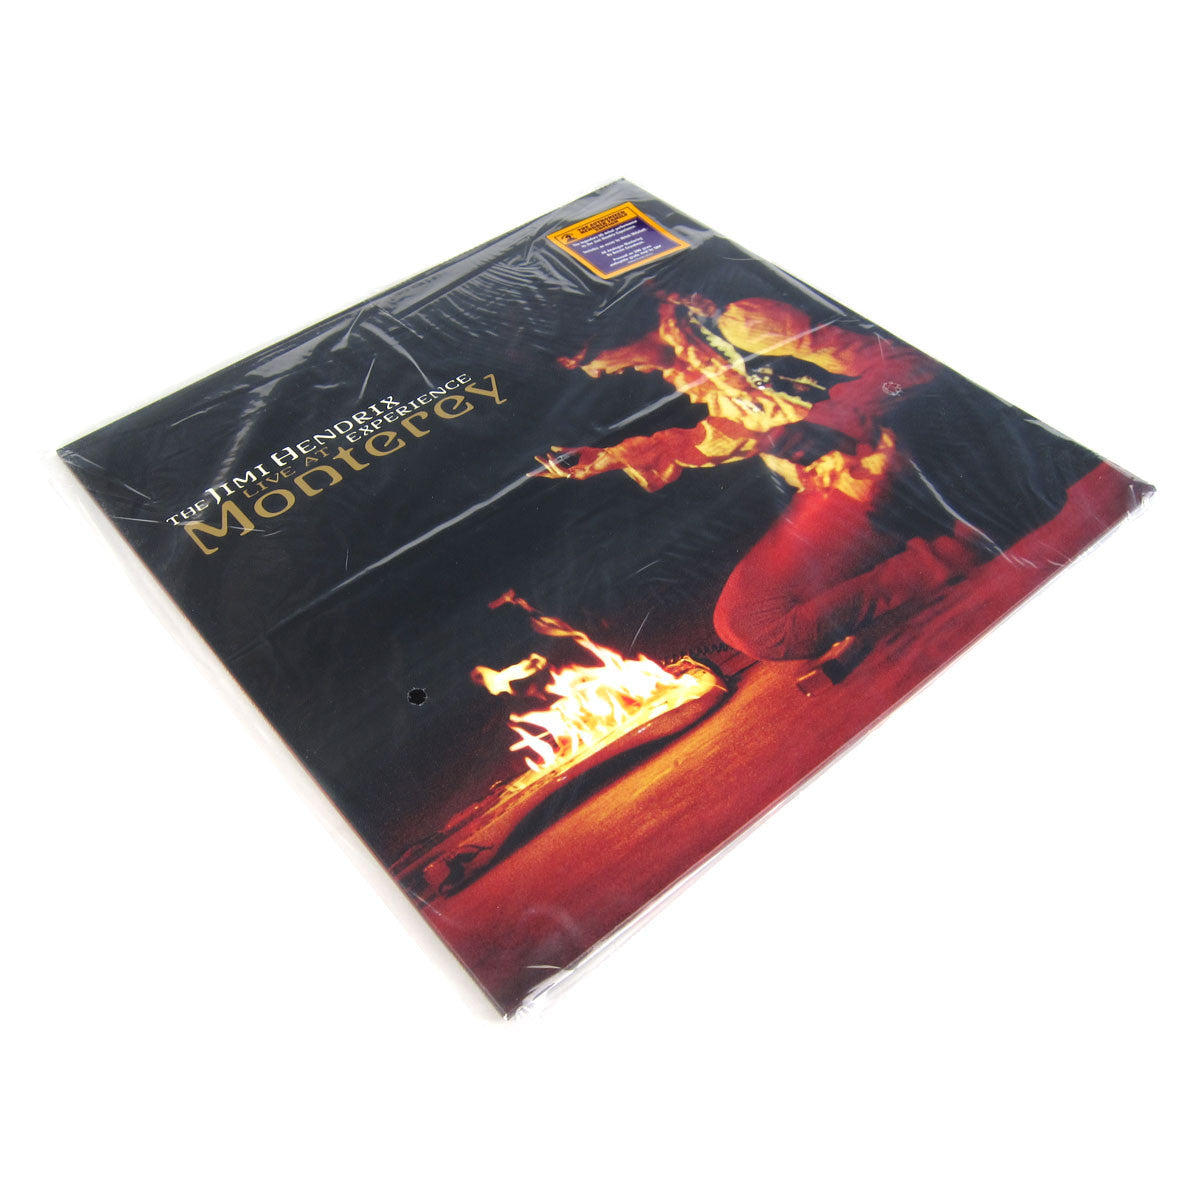 The Jimi Hendrix Experience: Live At Monterey Vinyl LP (Record Store Day 2014)